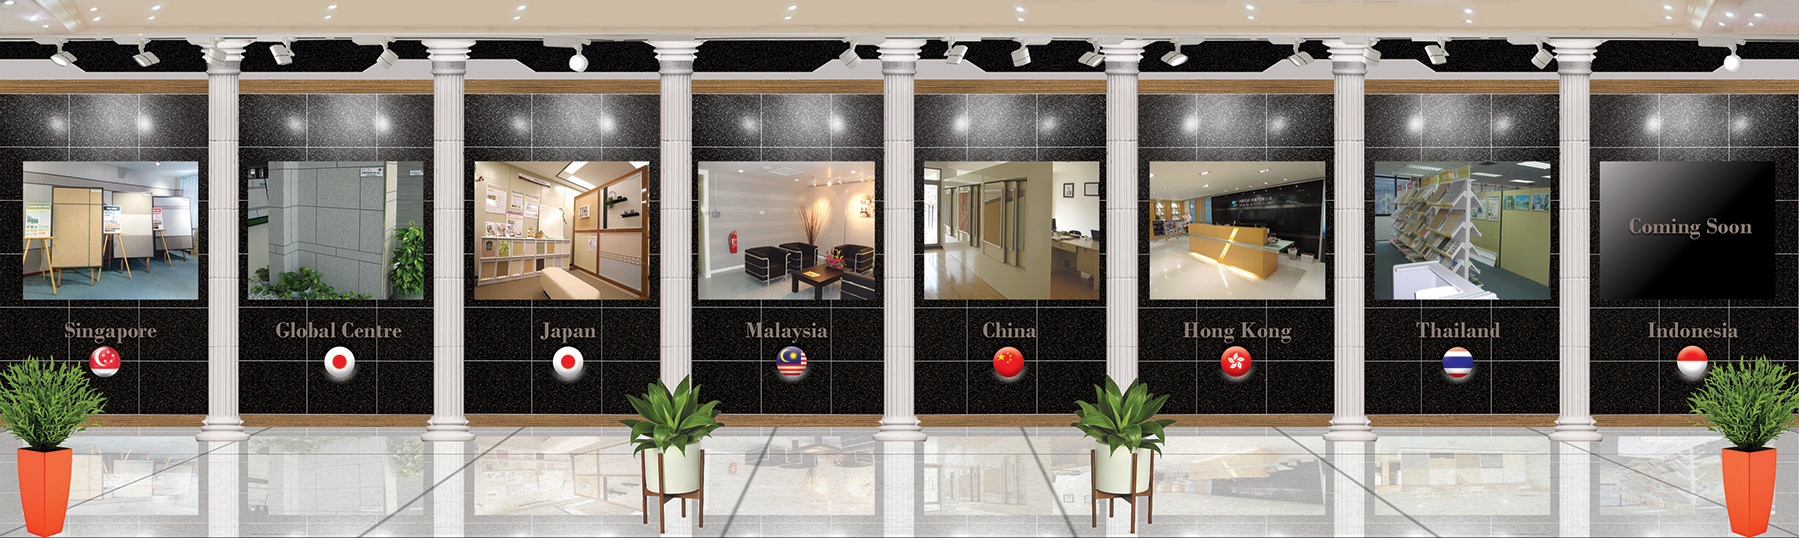 SKK Professional Painting Services For Interior & Exterior